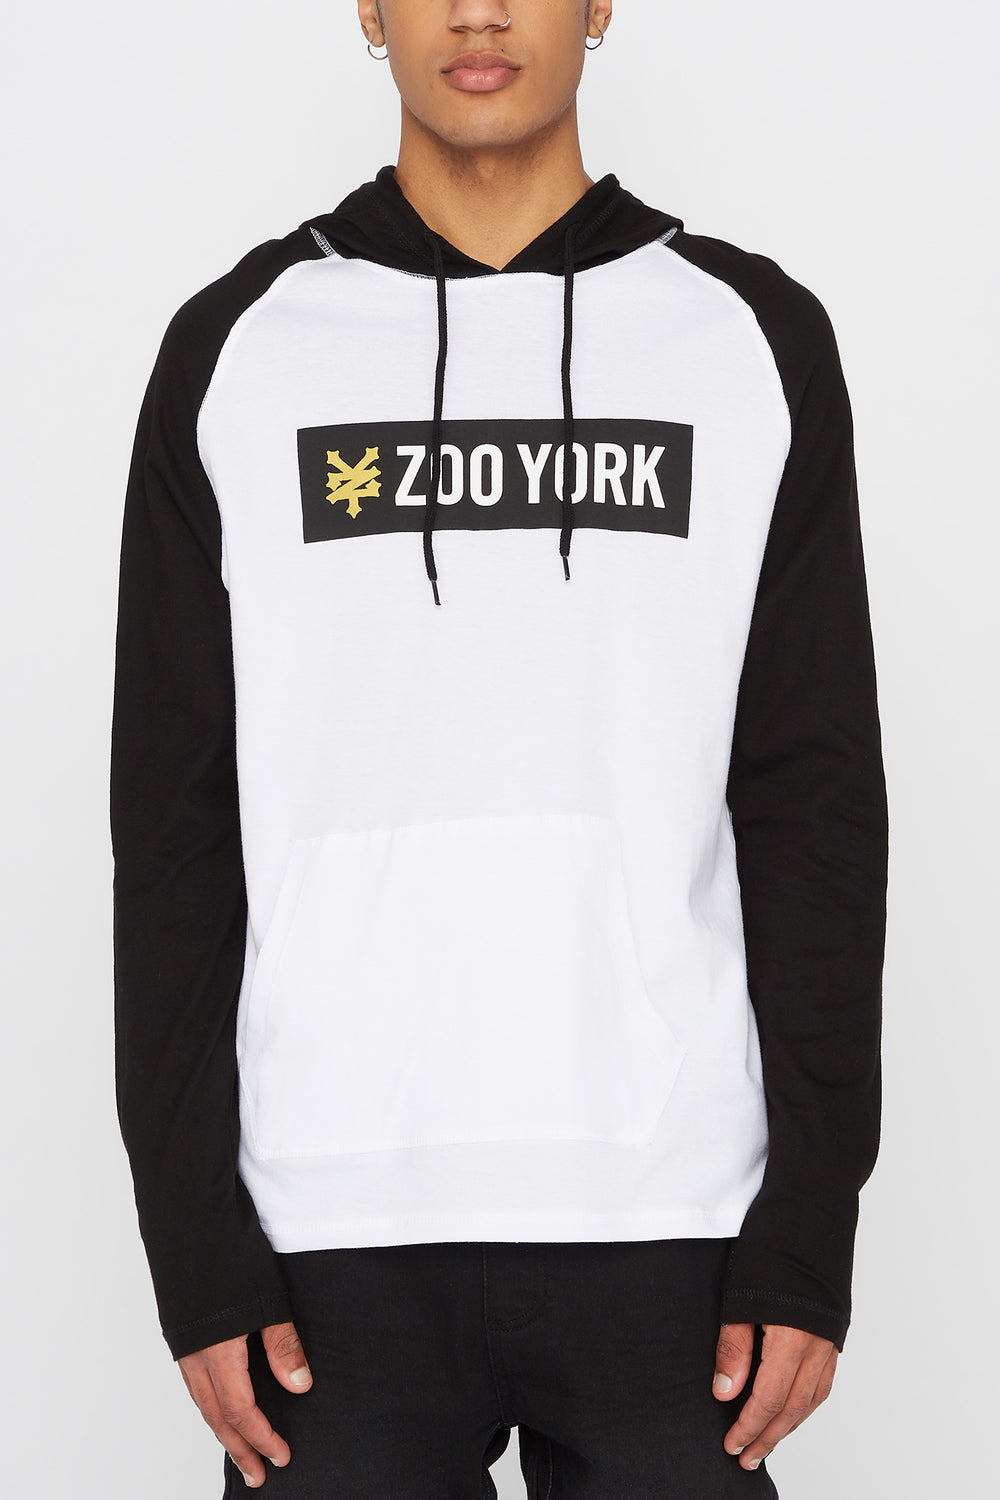 Zoo York Mens Hooded Long Sleeve Shirt White